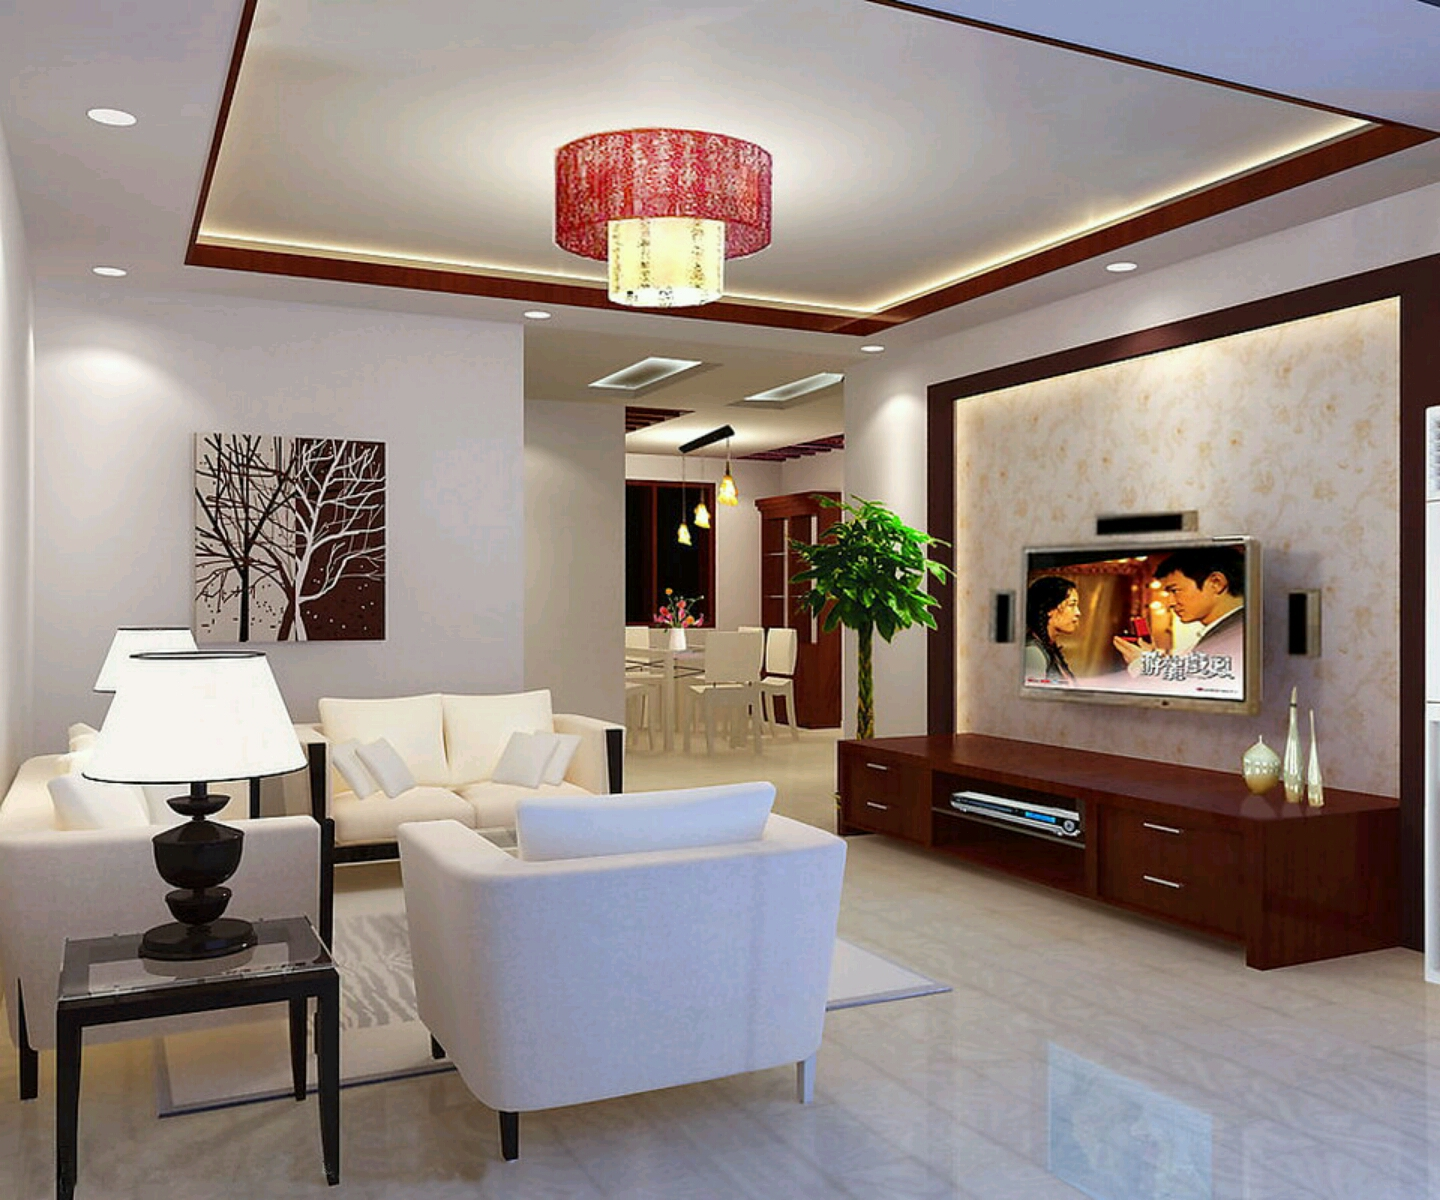 Modern interior decoration living rooms ceiling designs for Decoration for homes modern